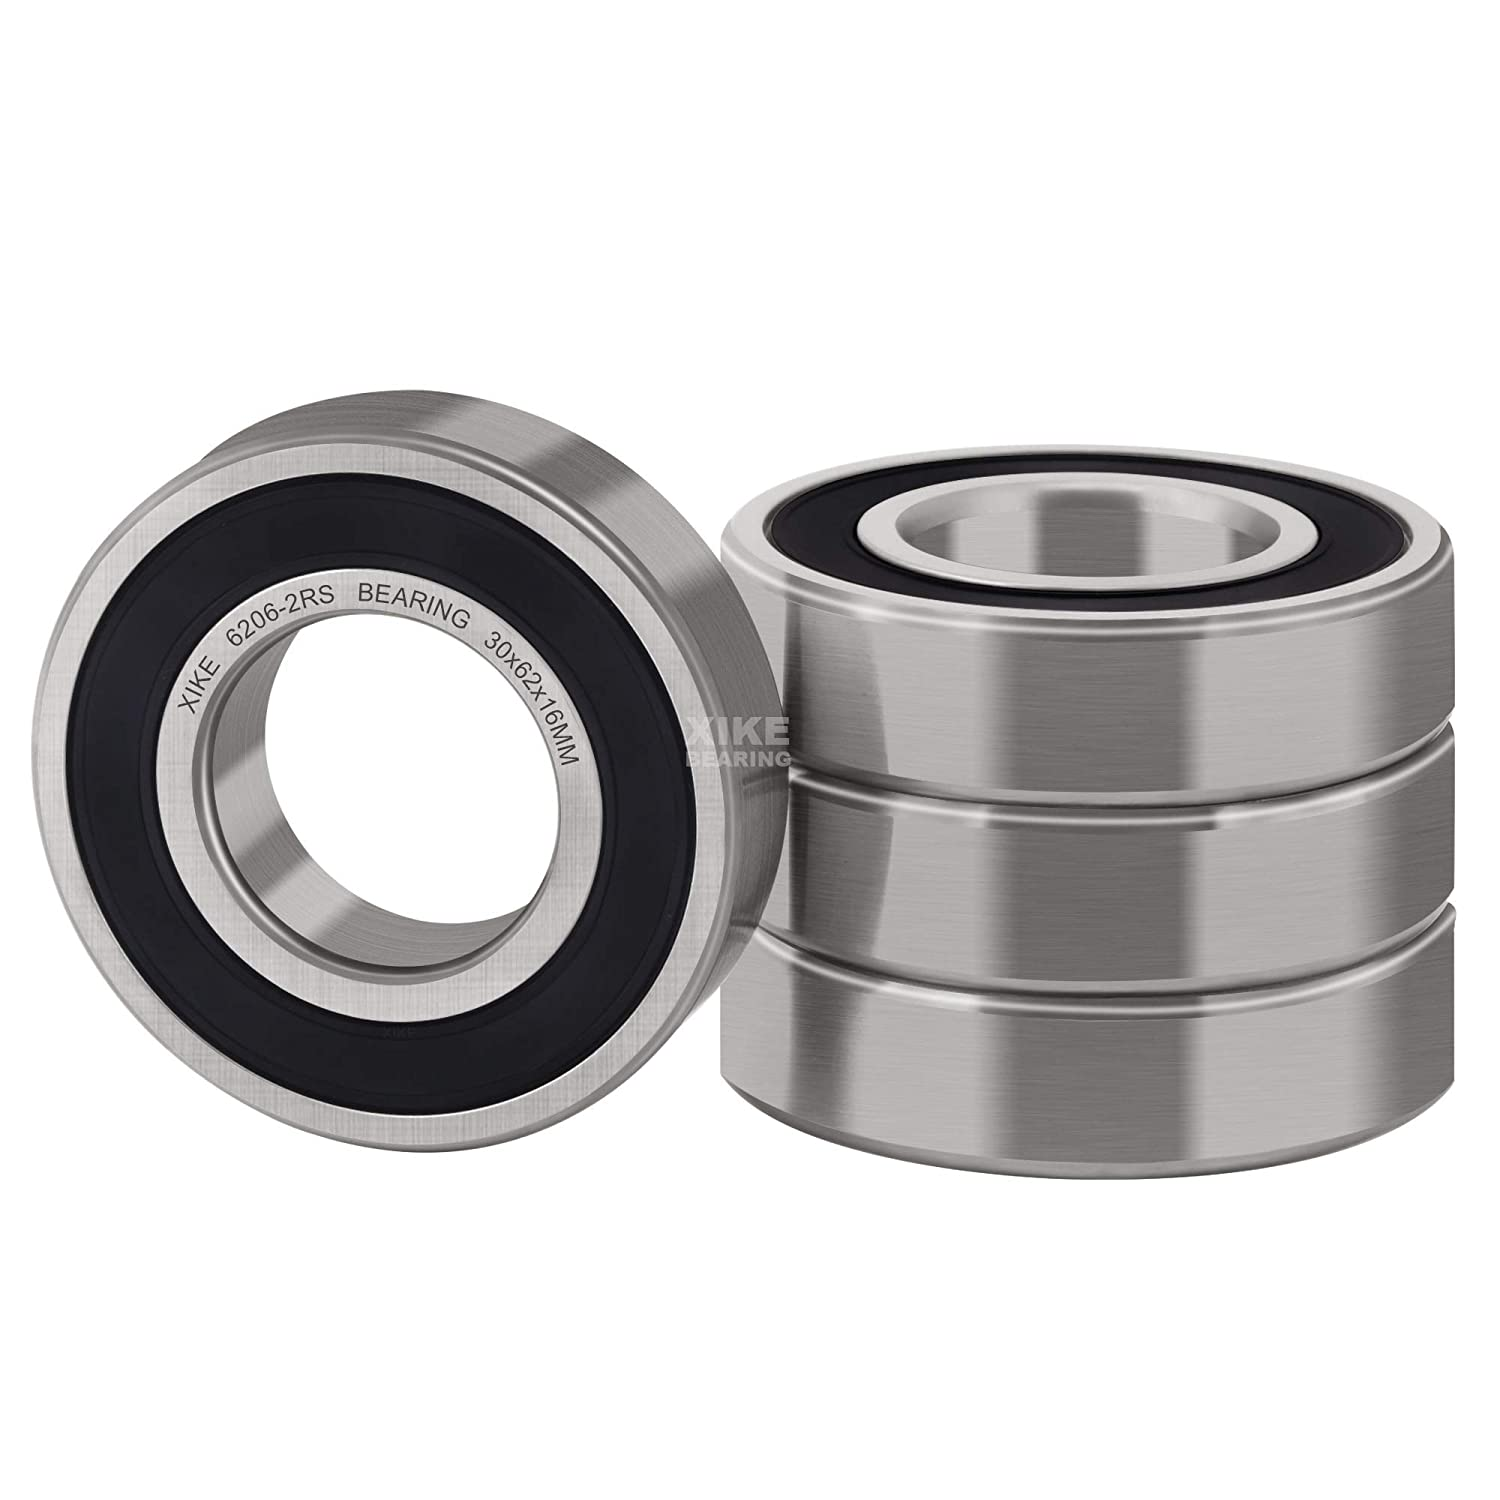 Qty-2 6206-2RS Rubber Seal Ball Bearing